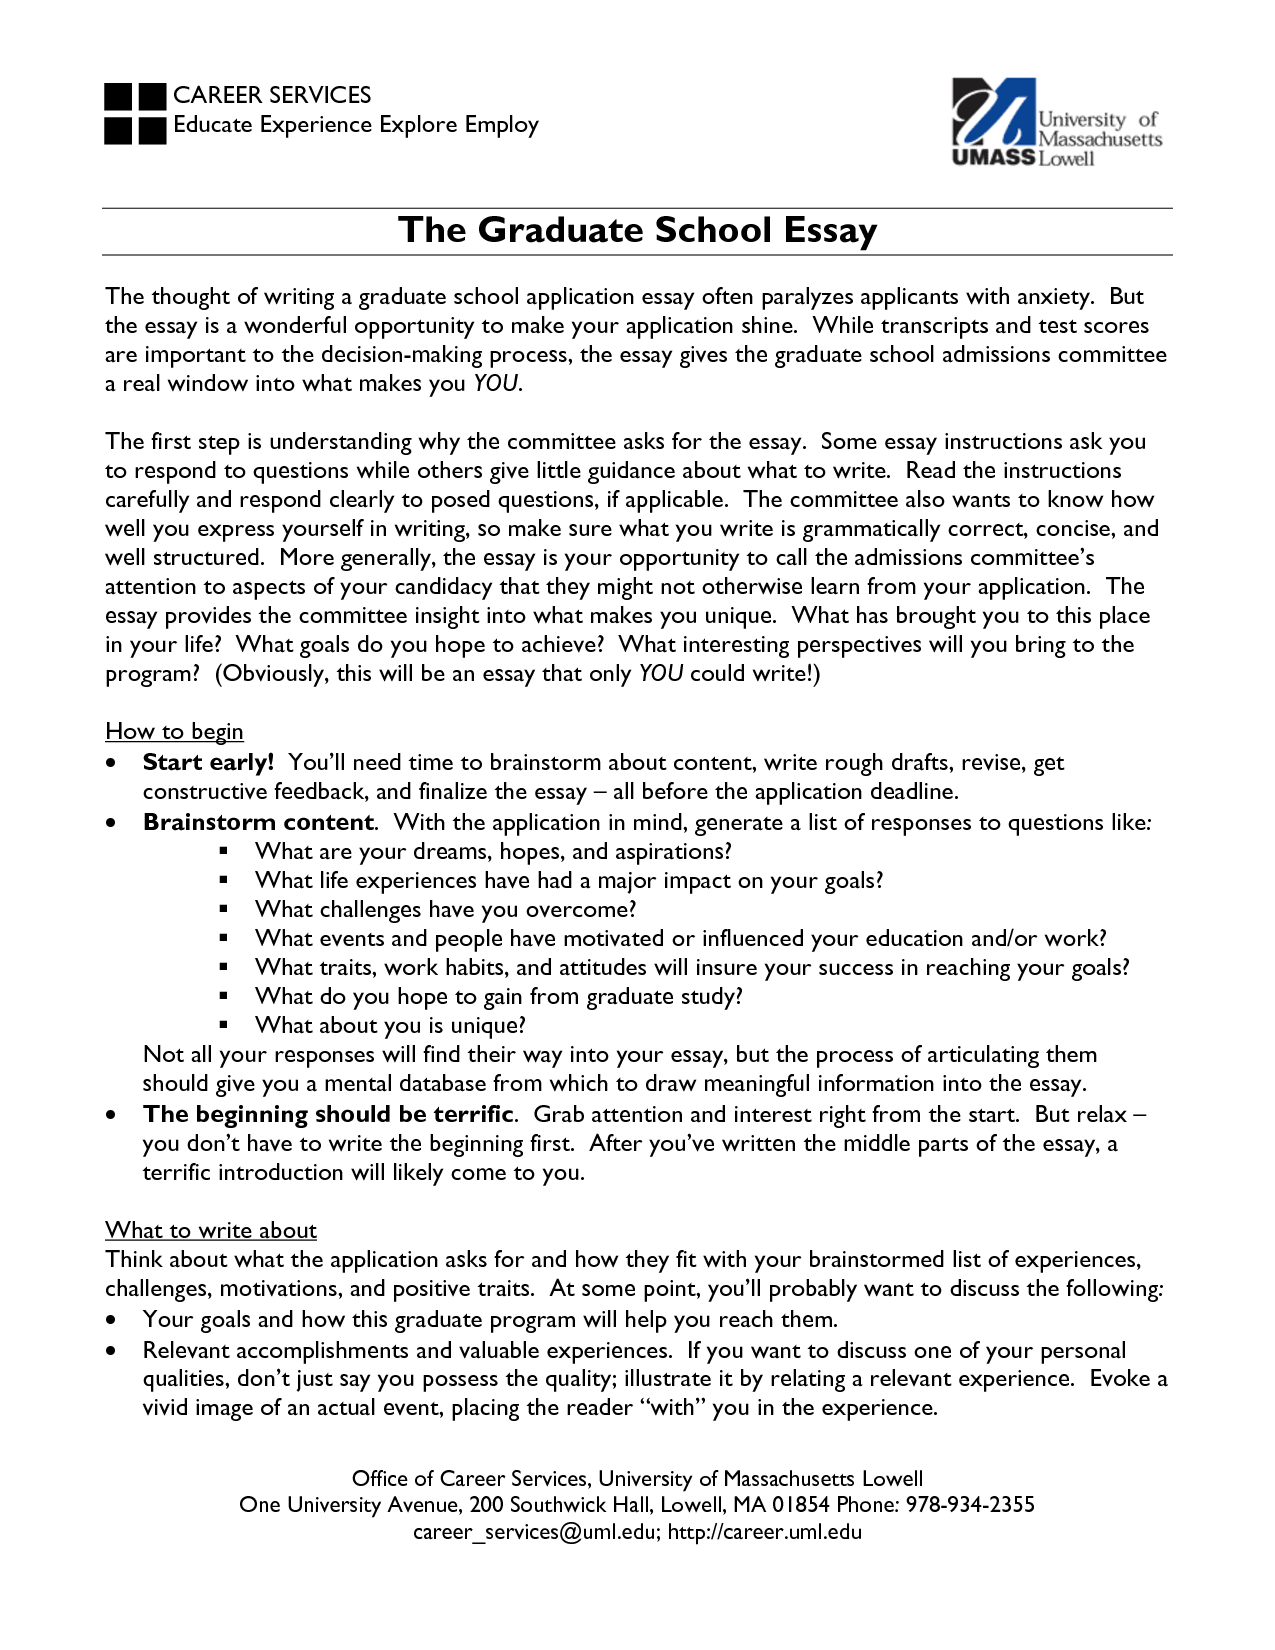 Graduate school application essays tips